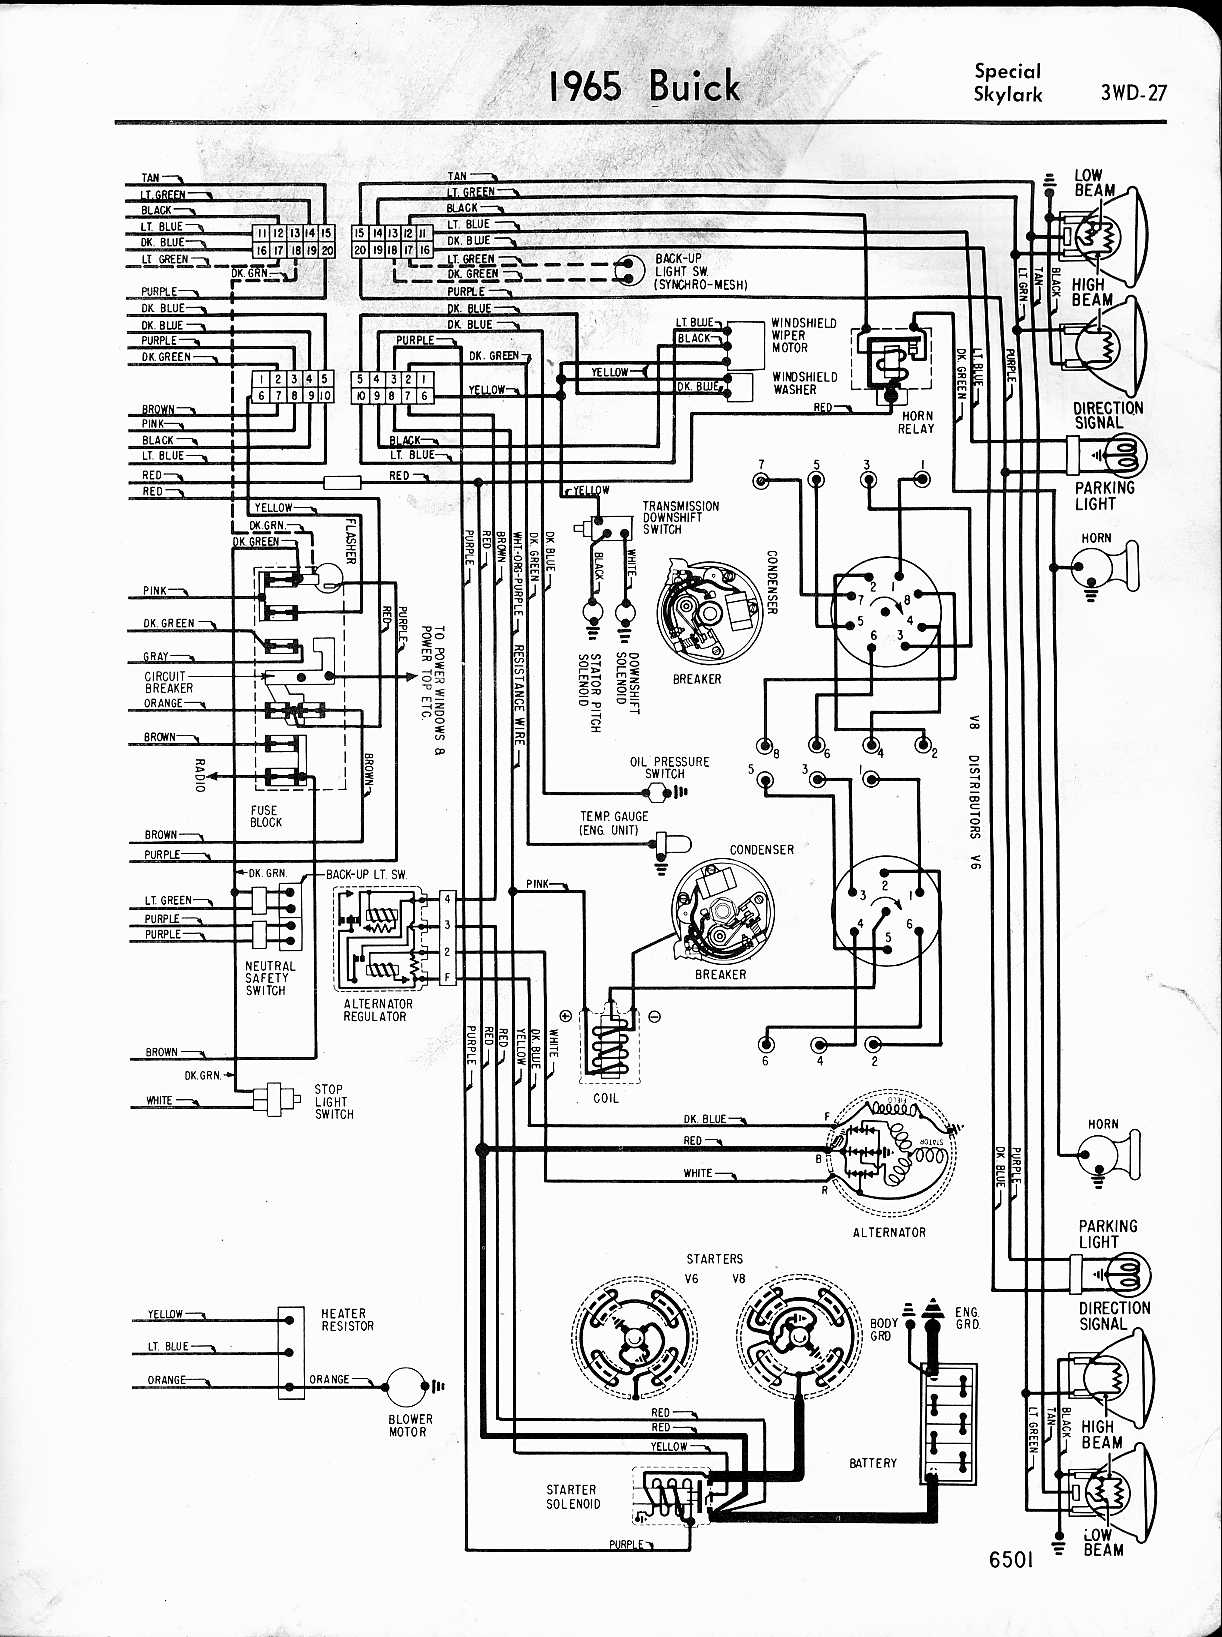 wiring diagram for 95 chevy camaro convertible #4 95 Buick Lesabre Wiring Diagram wiring diagram for 95 chevy camaro convertible